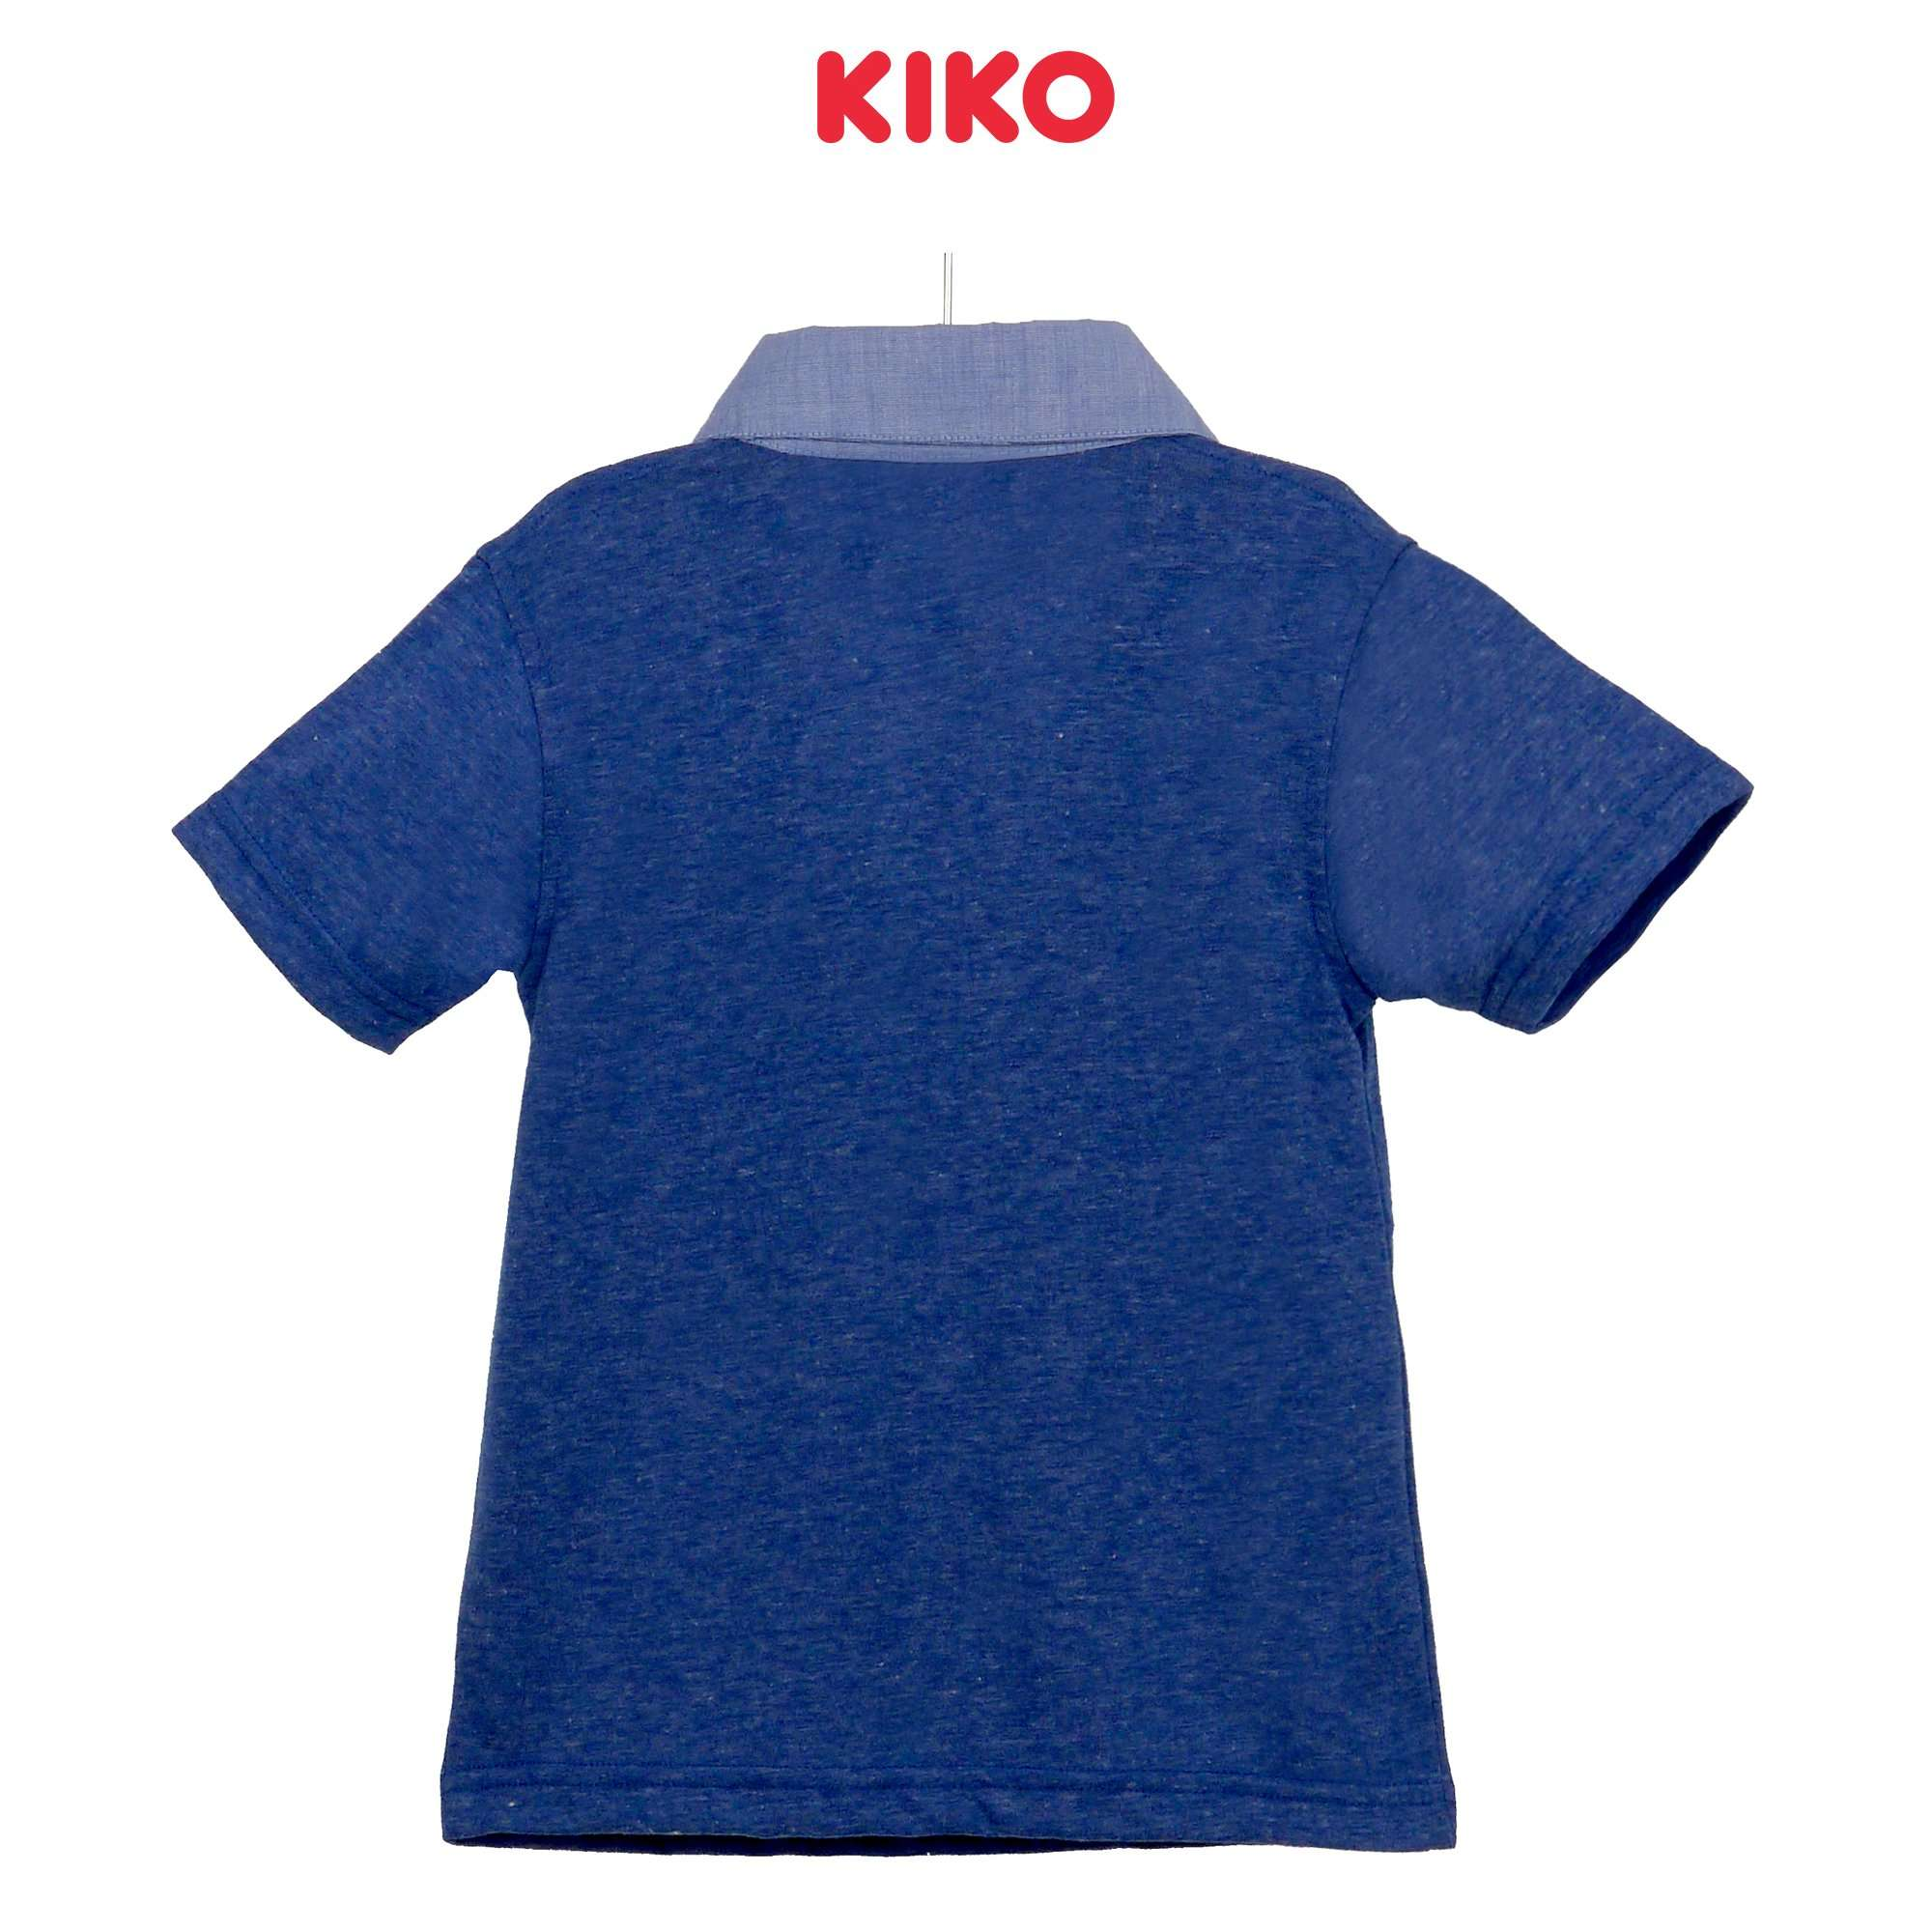 KIKO Boy Short Sleeve Collar Tee 130087-121 : Buy KIKO online at CMG.MY